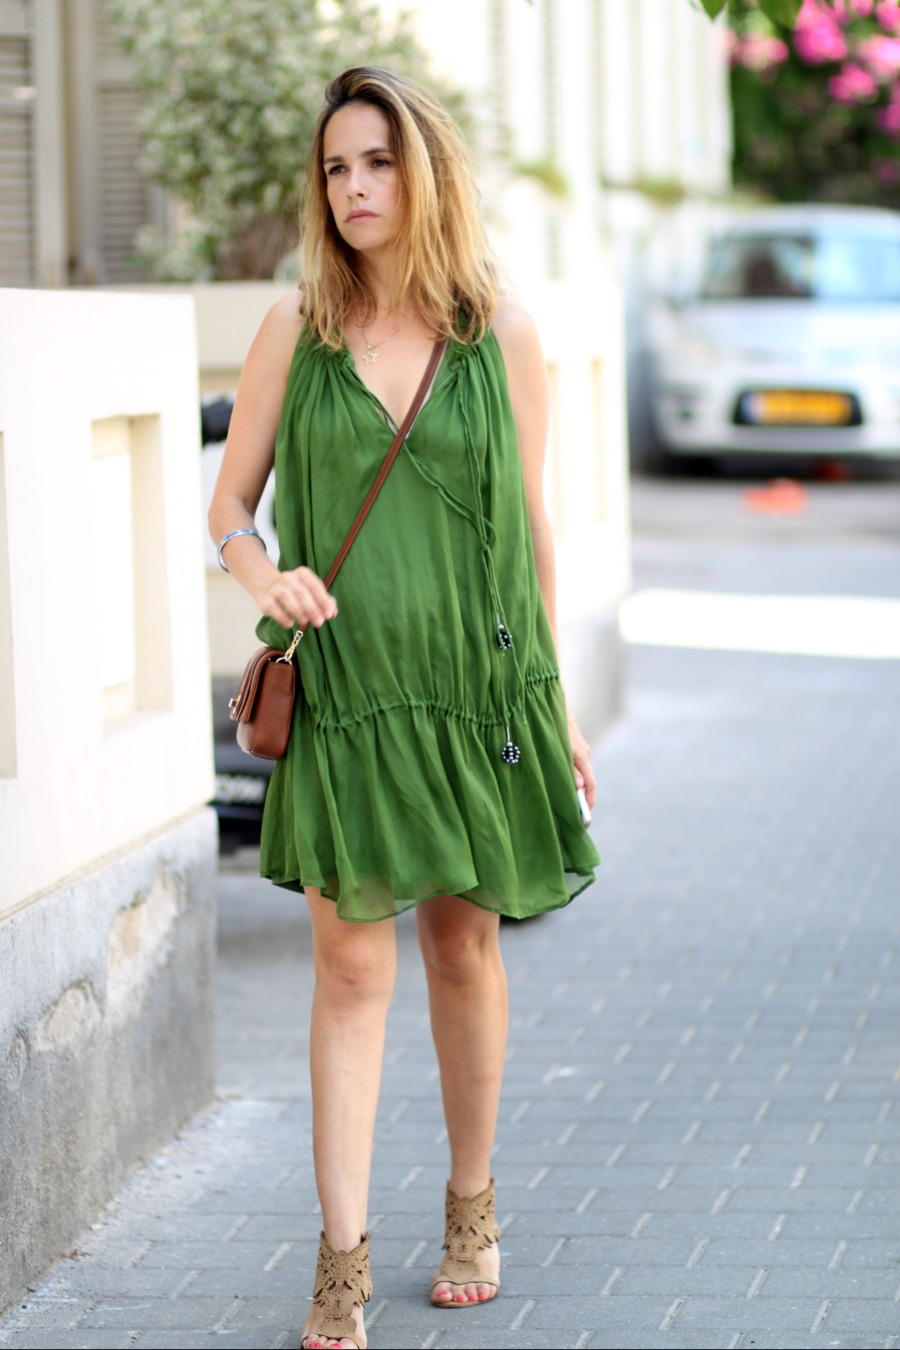 lookoftheday, dress, summer2015, fashiontelaviv, fashionblogger, anyahindmarchbag, ootd, בלוגאופנה, telavivstreetstyle